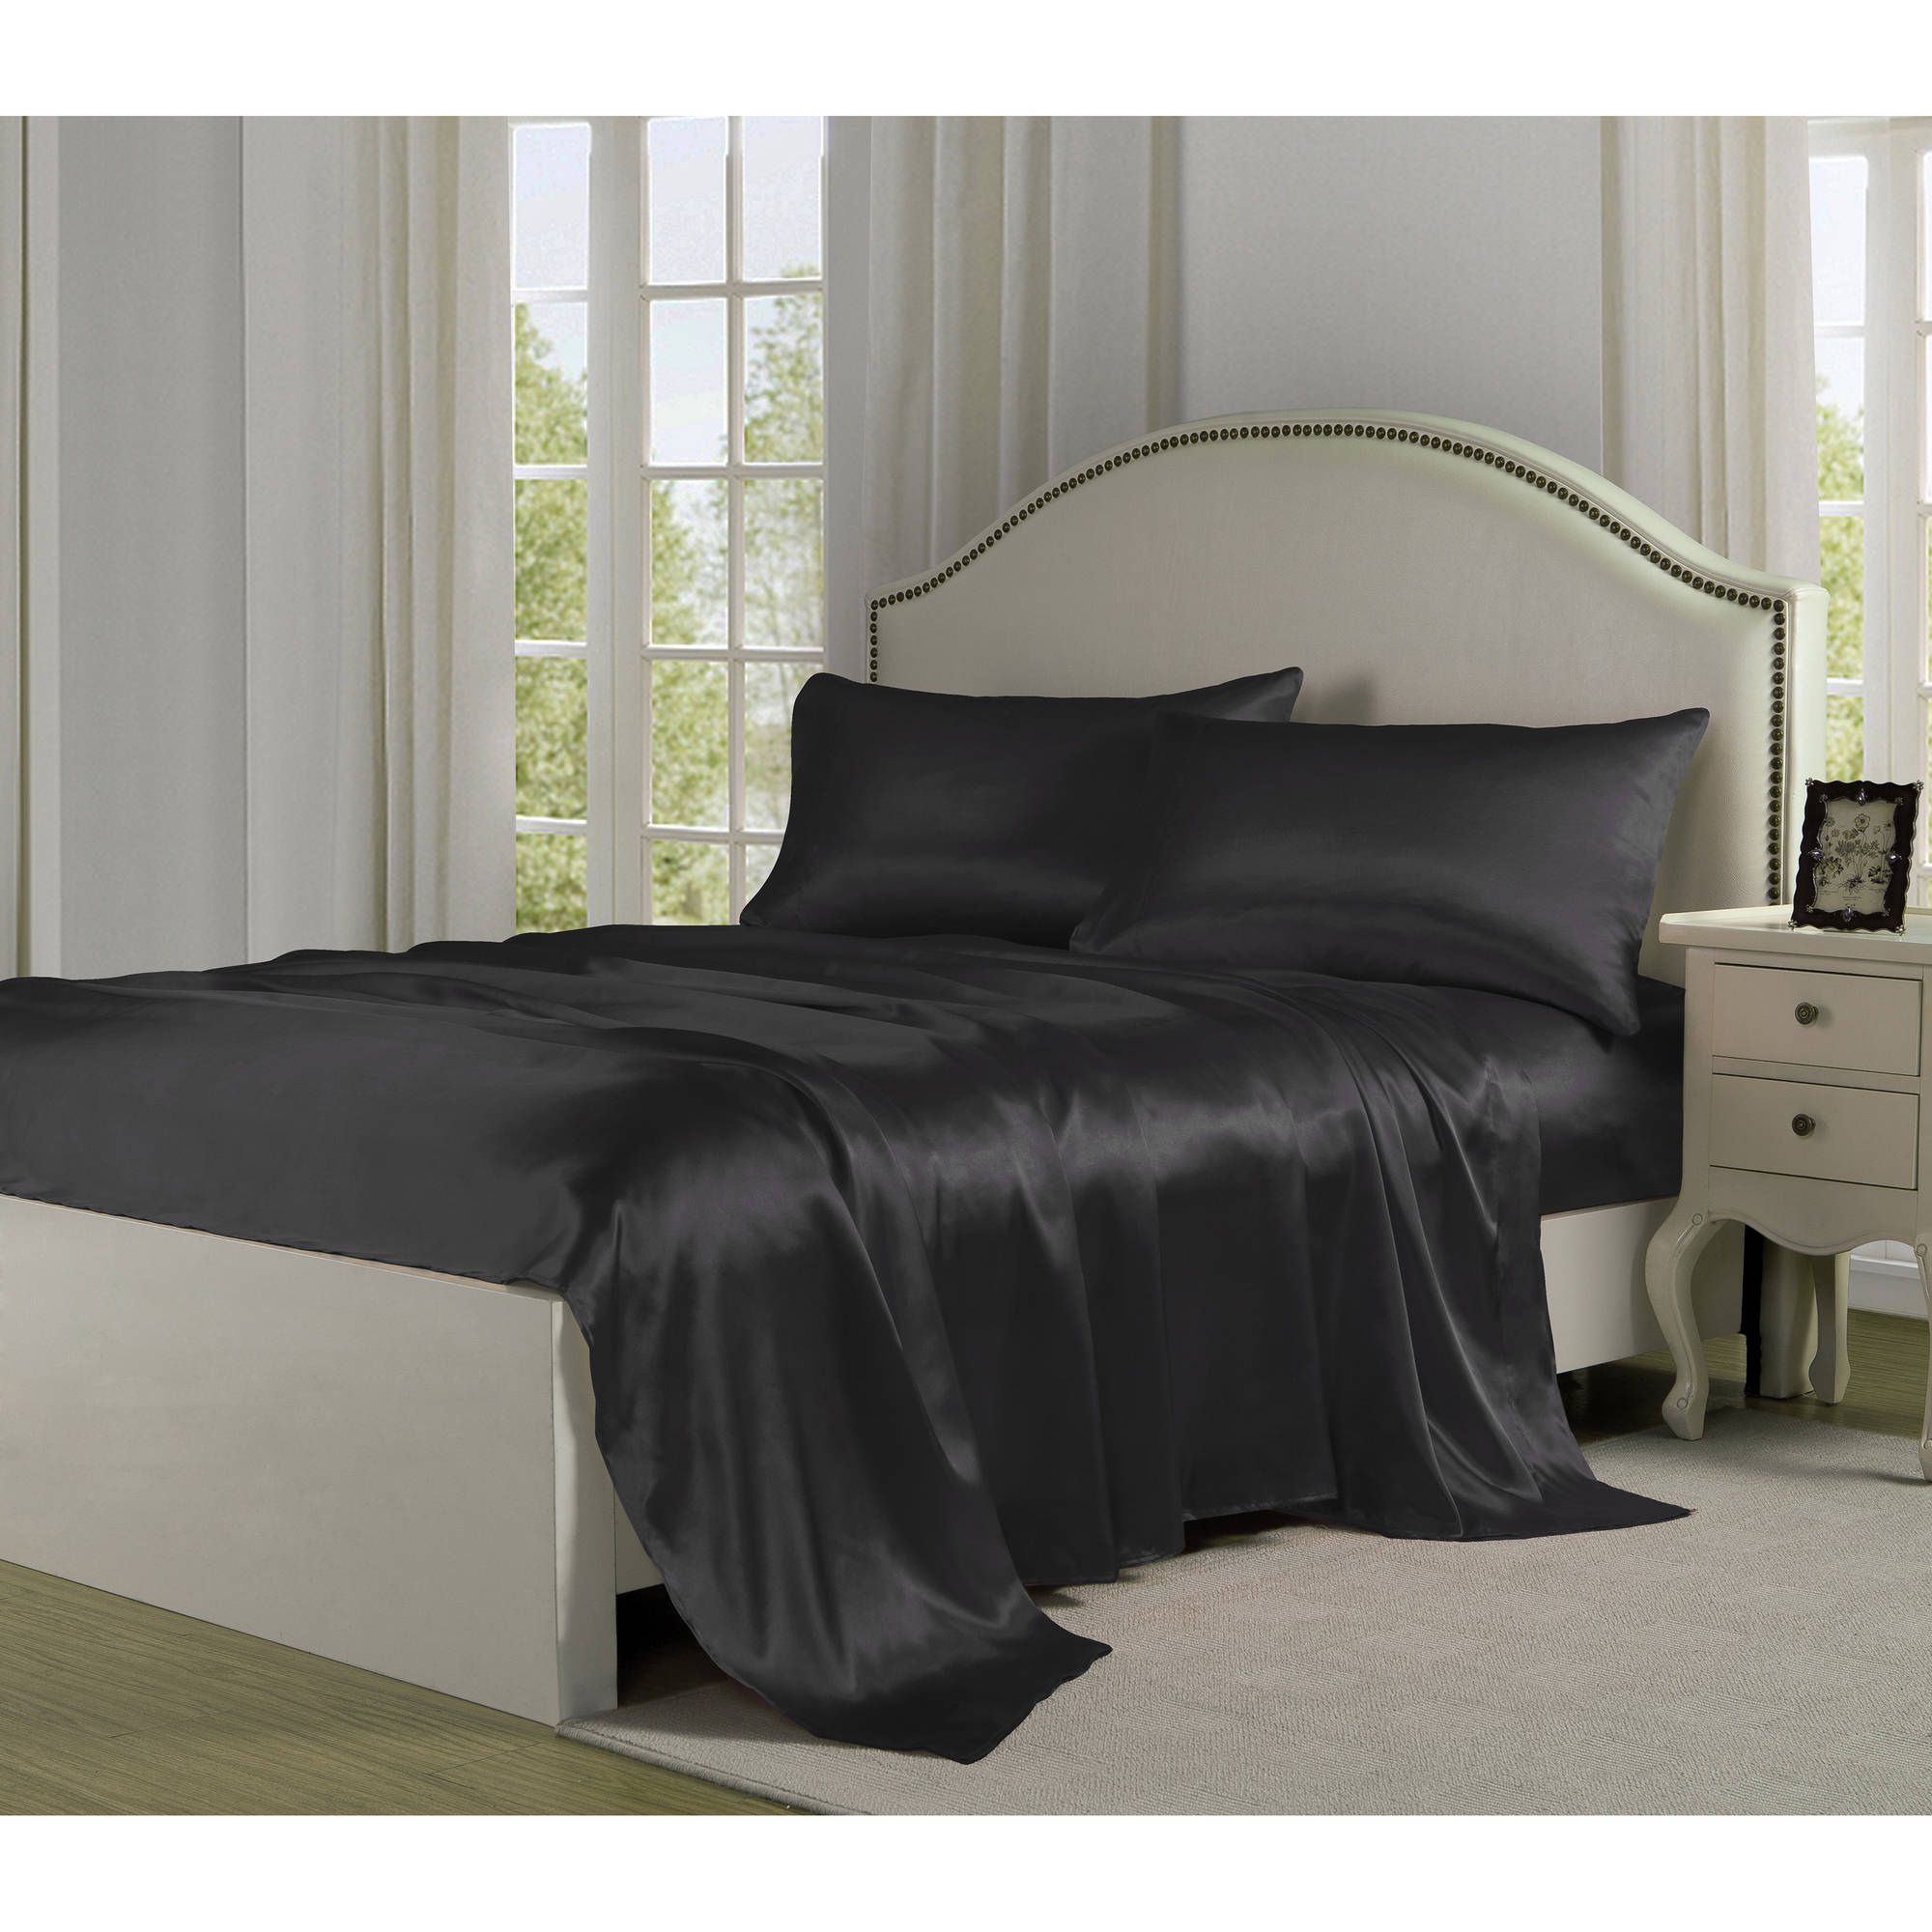 Satin Charmeuse Silky Sheet Set Collection by Levinsohn